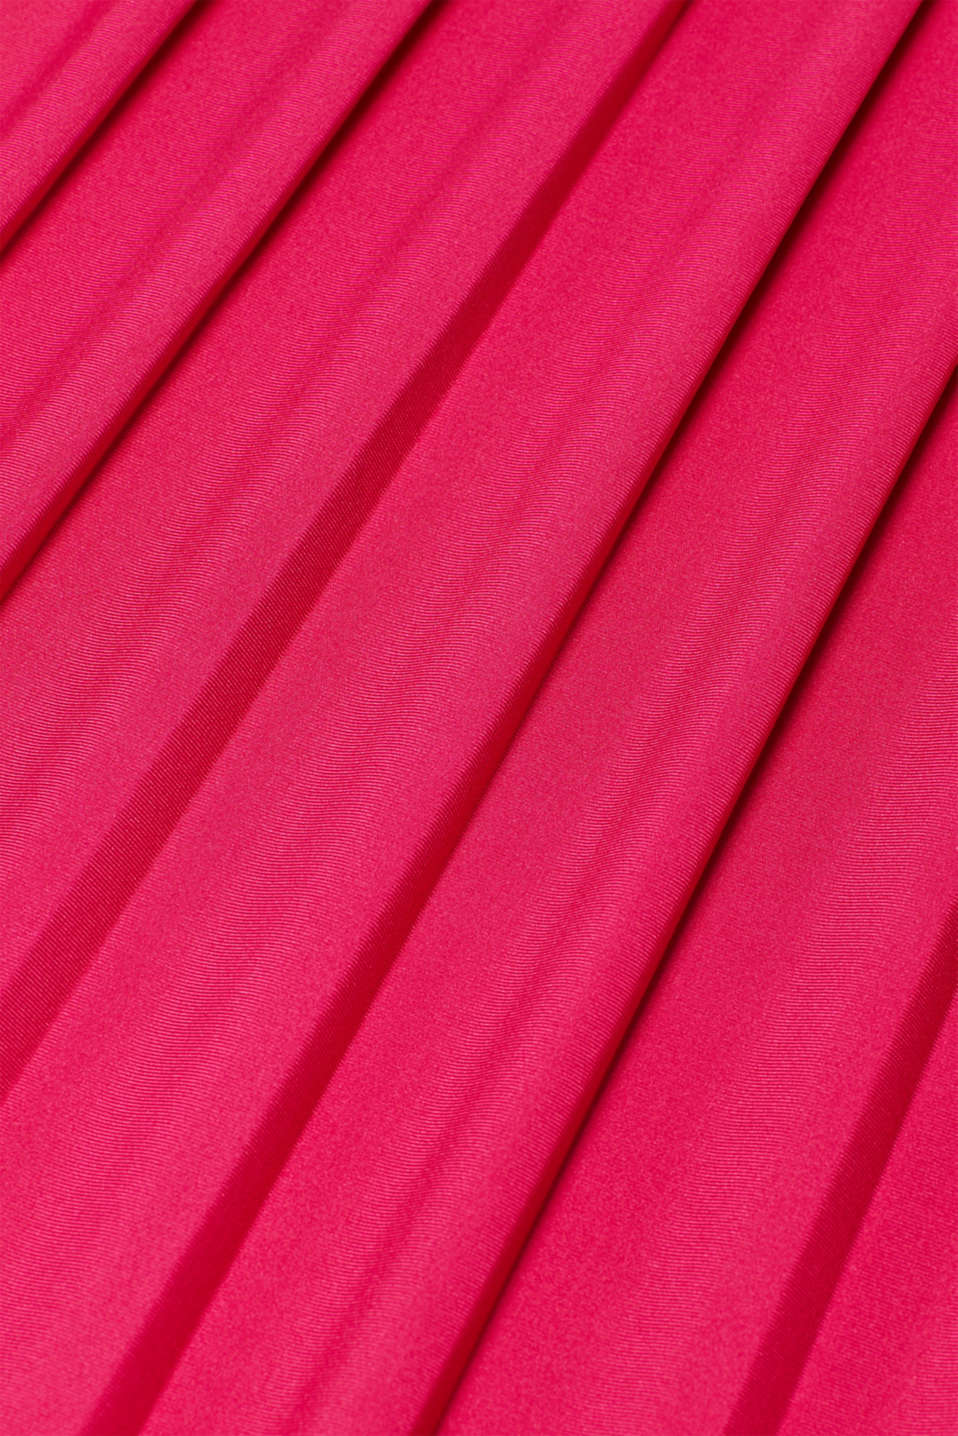 Lace-trimmed dress with a pleated skirt, LCPINK FUCHSIA, detail image number 4